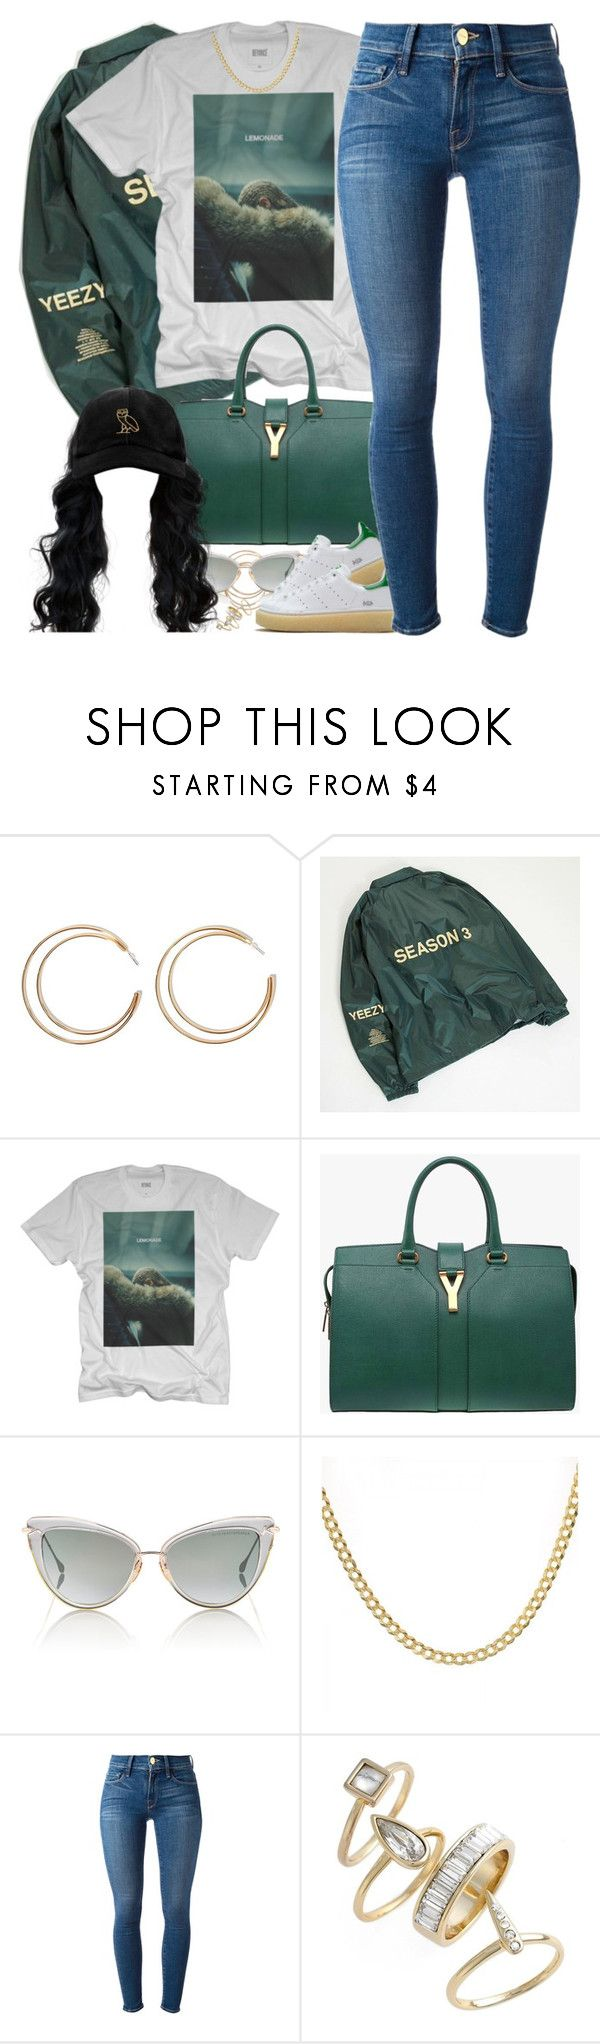 """""""Greenery"""" by oh-aurora ❤ liked on Polyvore featuring Forever 21, Yves Saint Laurent, Dita, Mr. Completely, Frame Denim, Alexis Bittar and October's Very Own"""